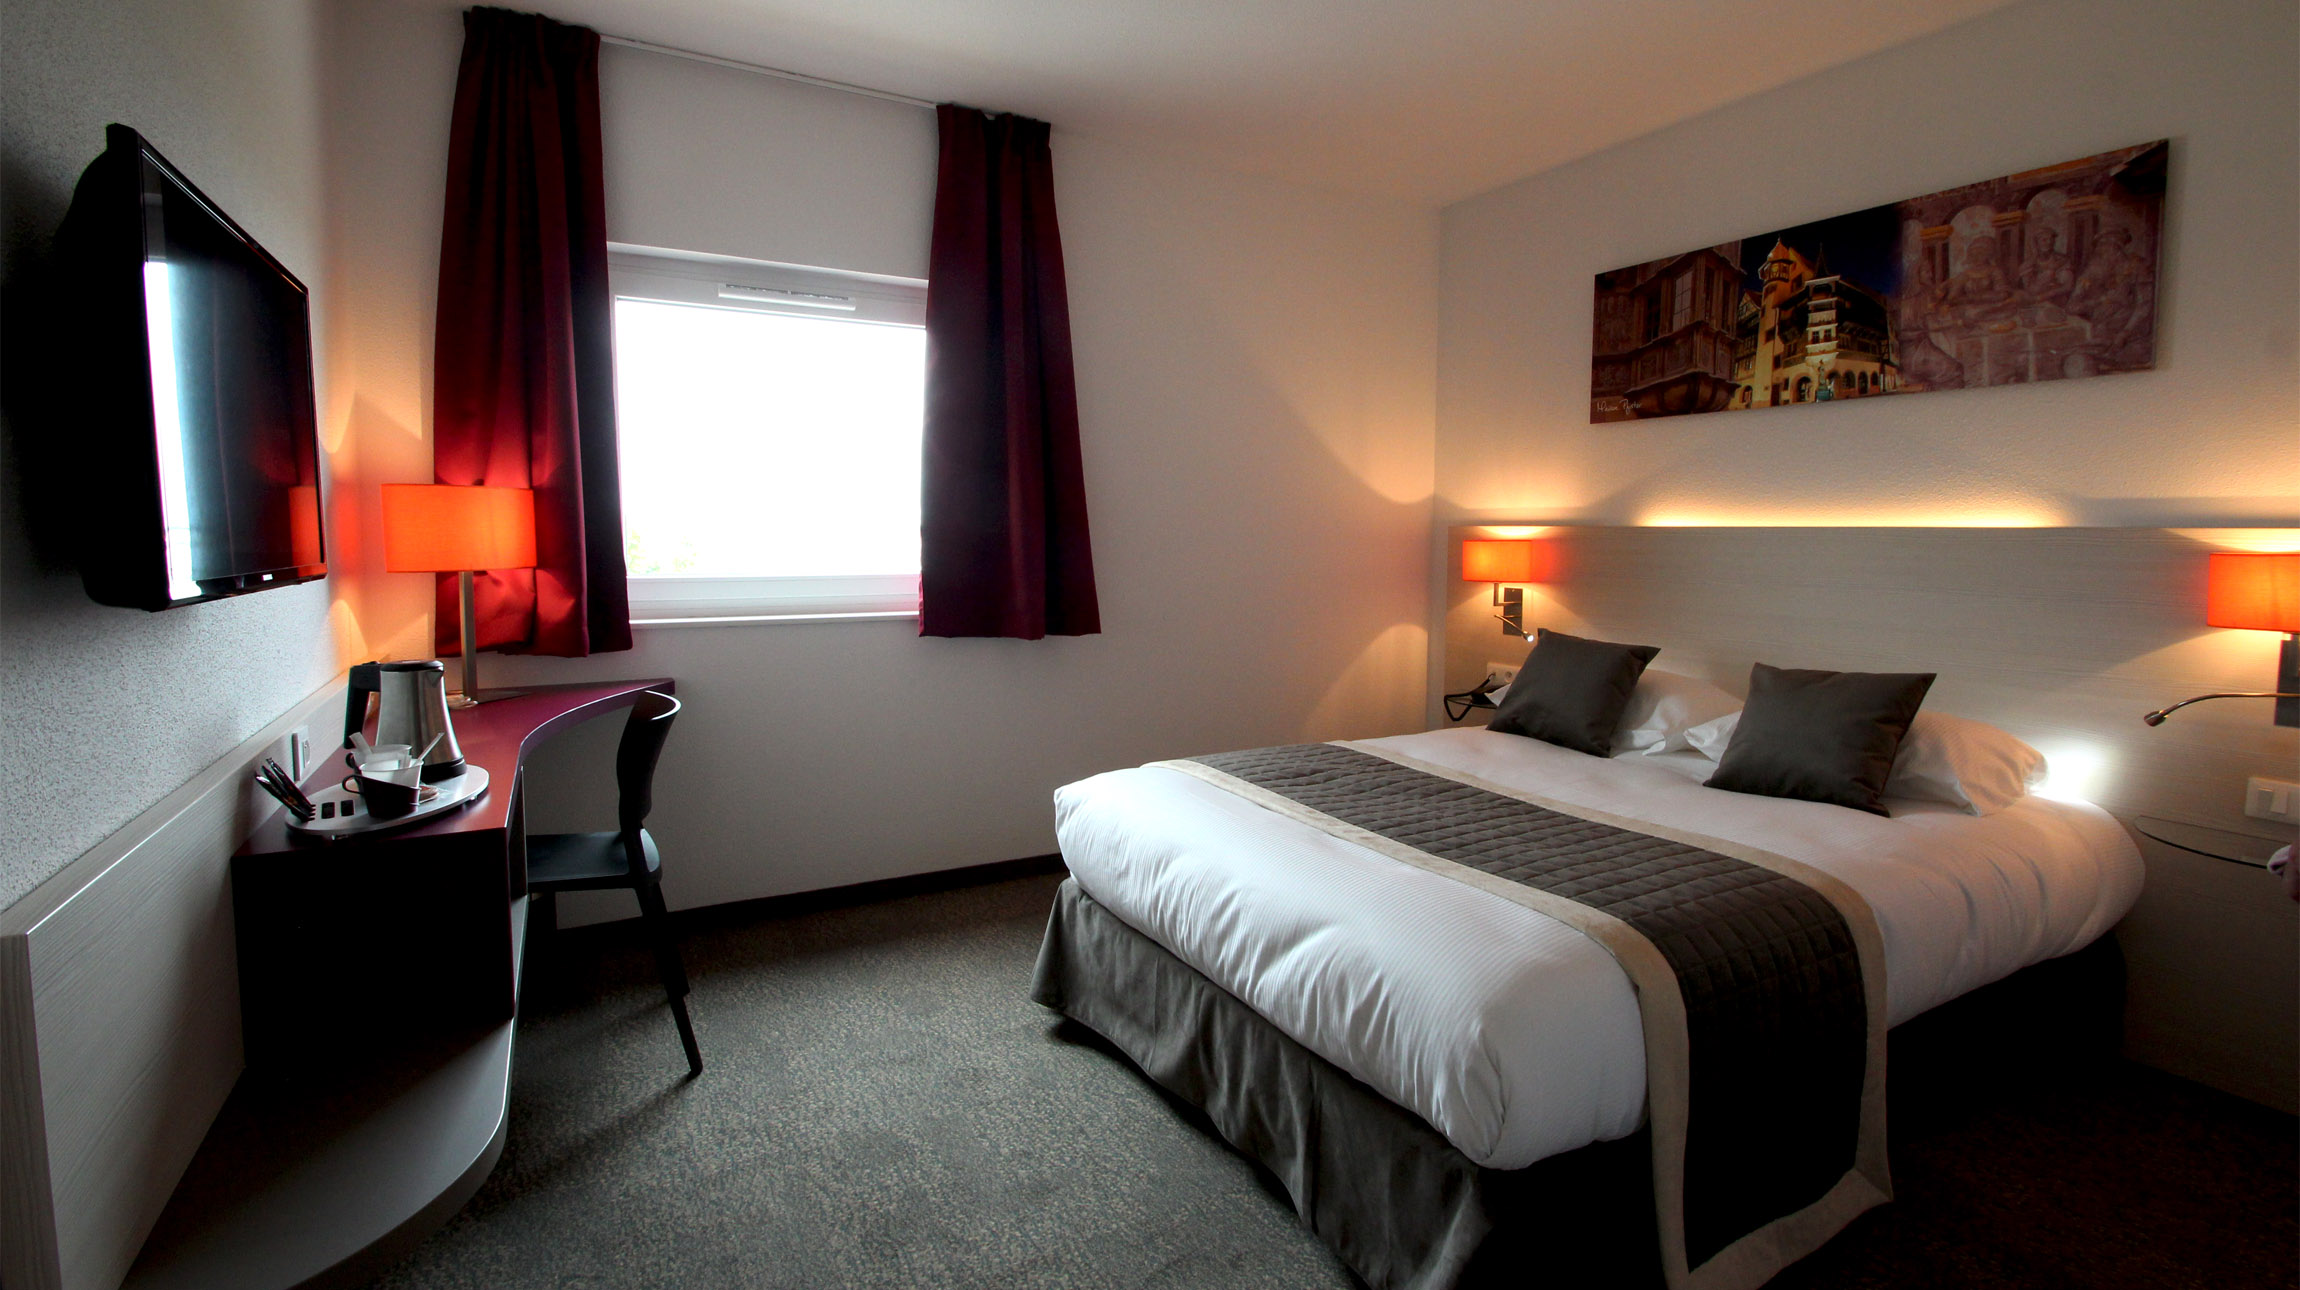 Our Fully accessible rooms